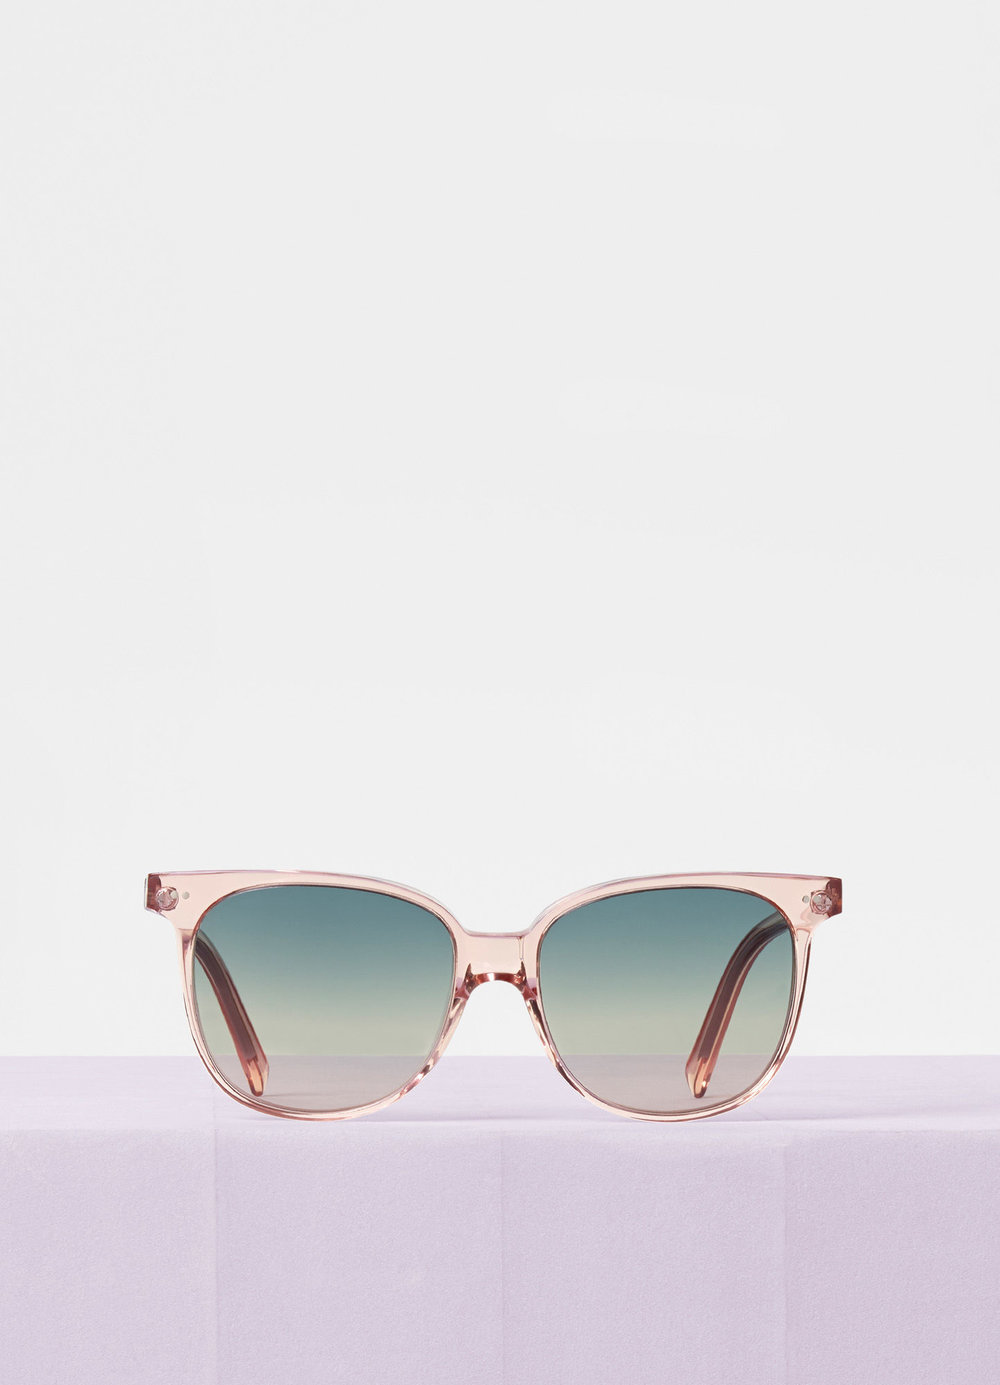 CELINE- CL400221 Sunglasses   £250   COLOUR : Transparent Pink   CATEGORY  SUN   MATERIAL  Acetate   SHAPE  Oversized